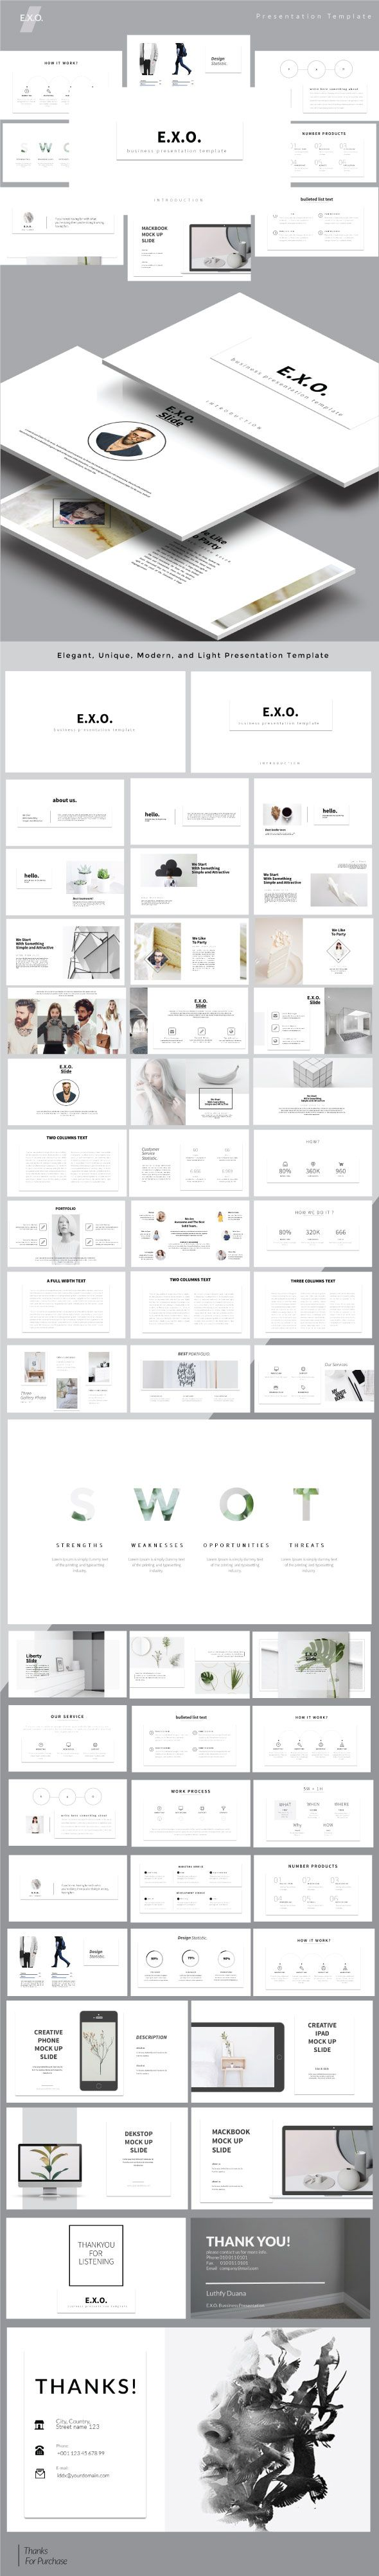 E.x.o. Multipurpose Powerpoint Template - Business PowerPoint Templates